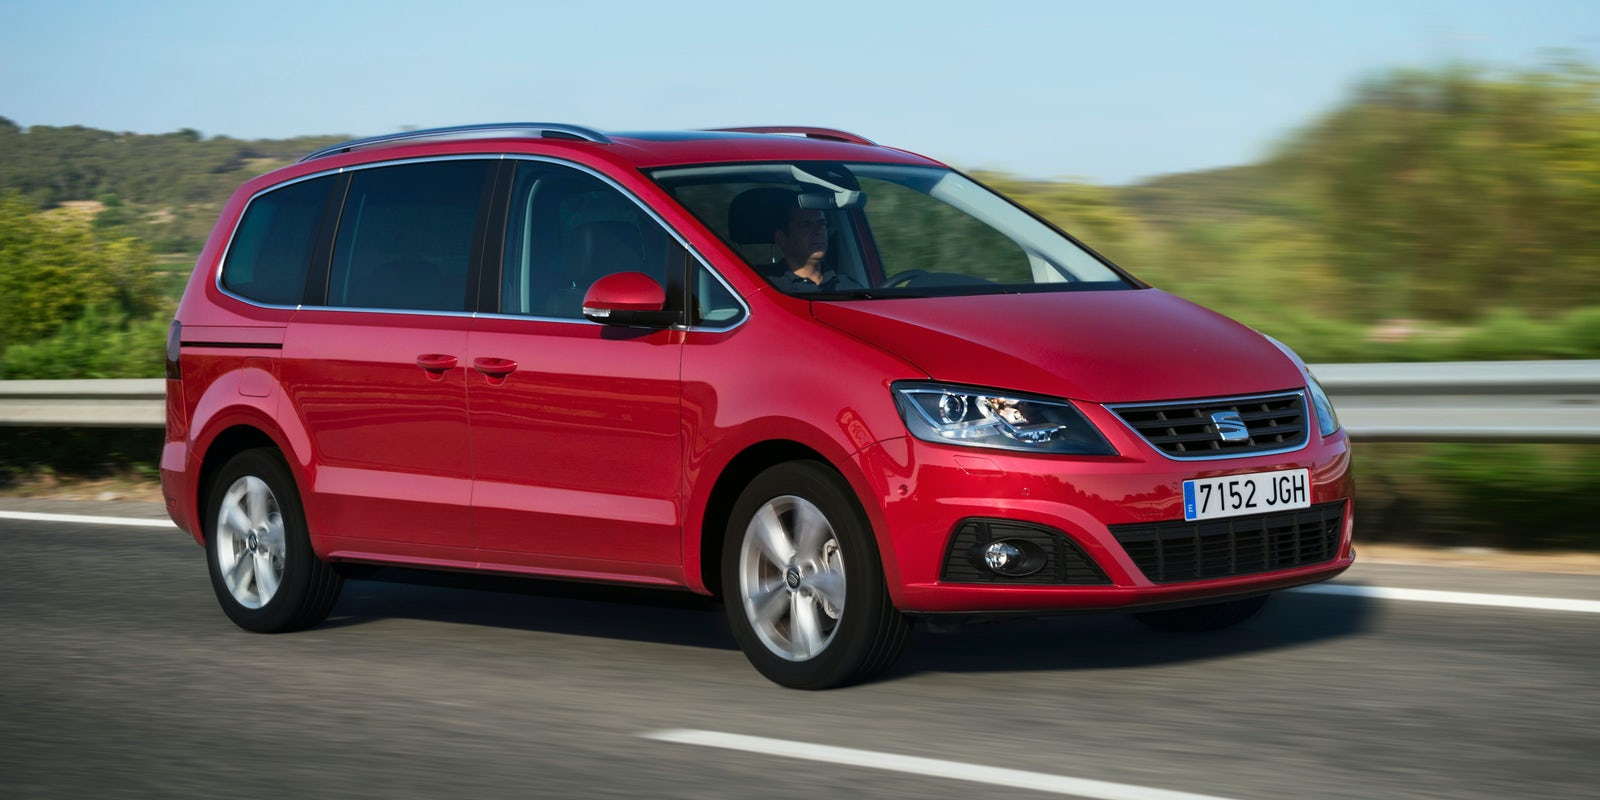 seat alhambra test technische daten preis carwow. Black Bedroom Furniture Sets. Home Design Ideas